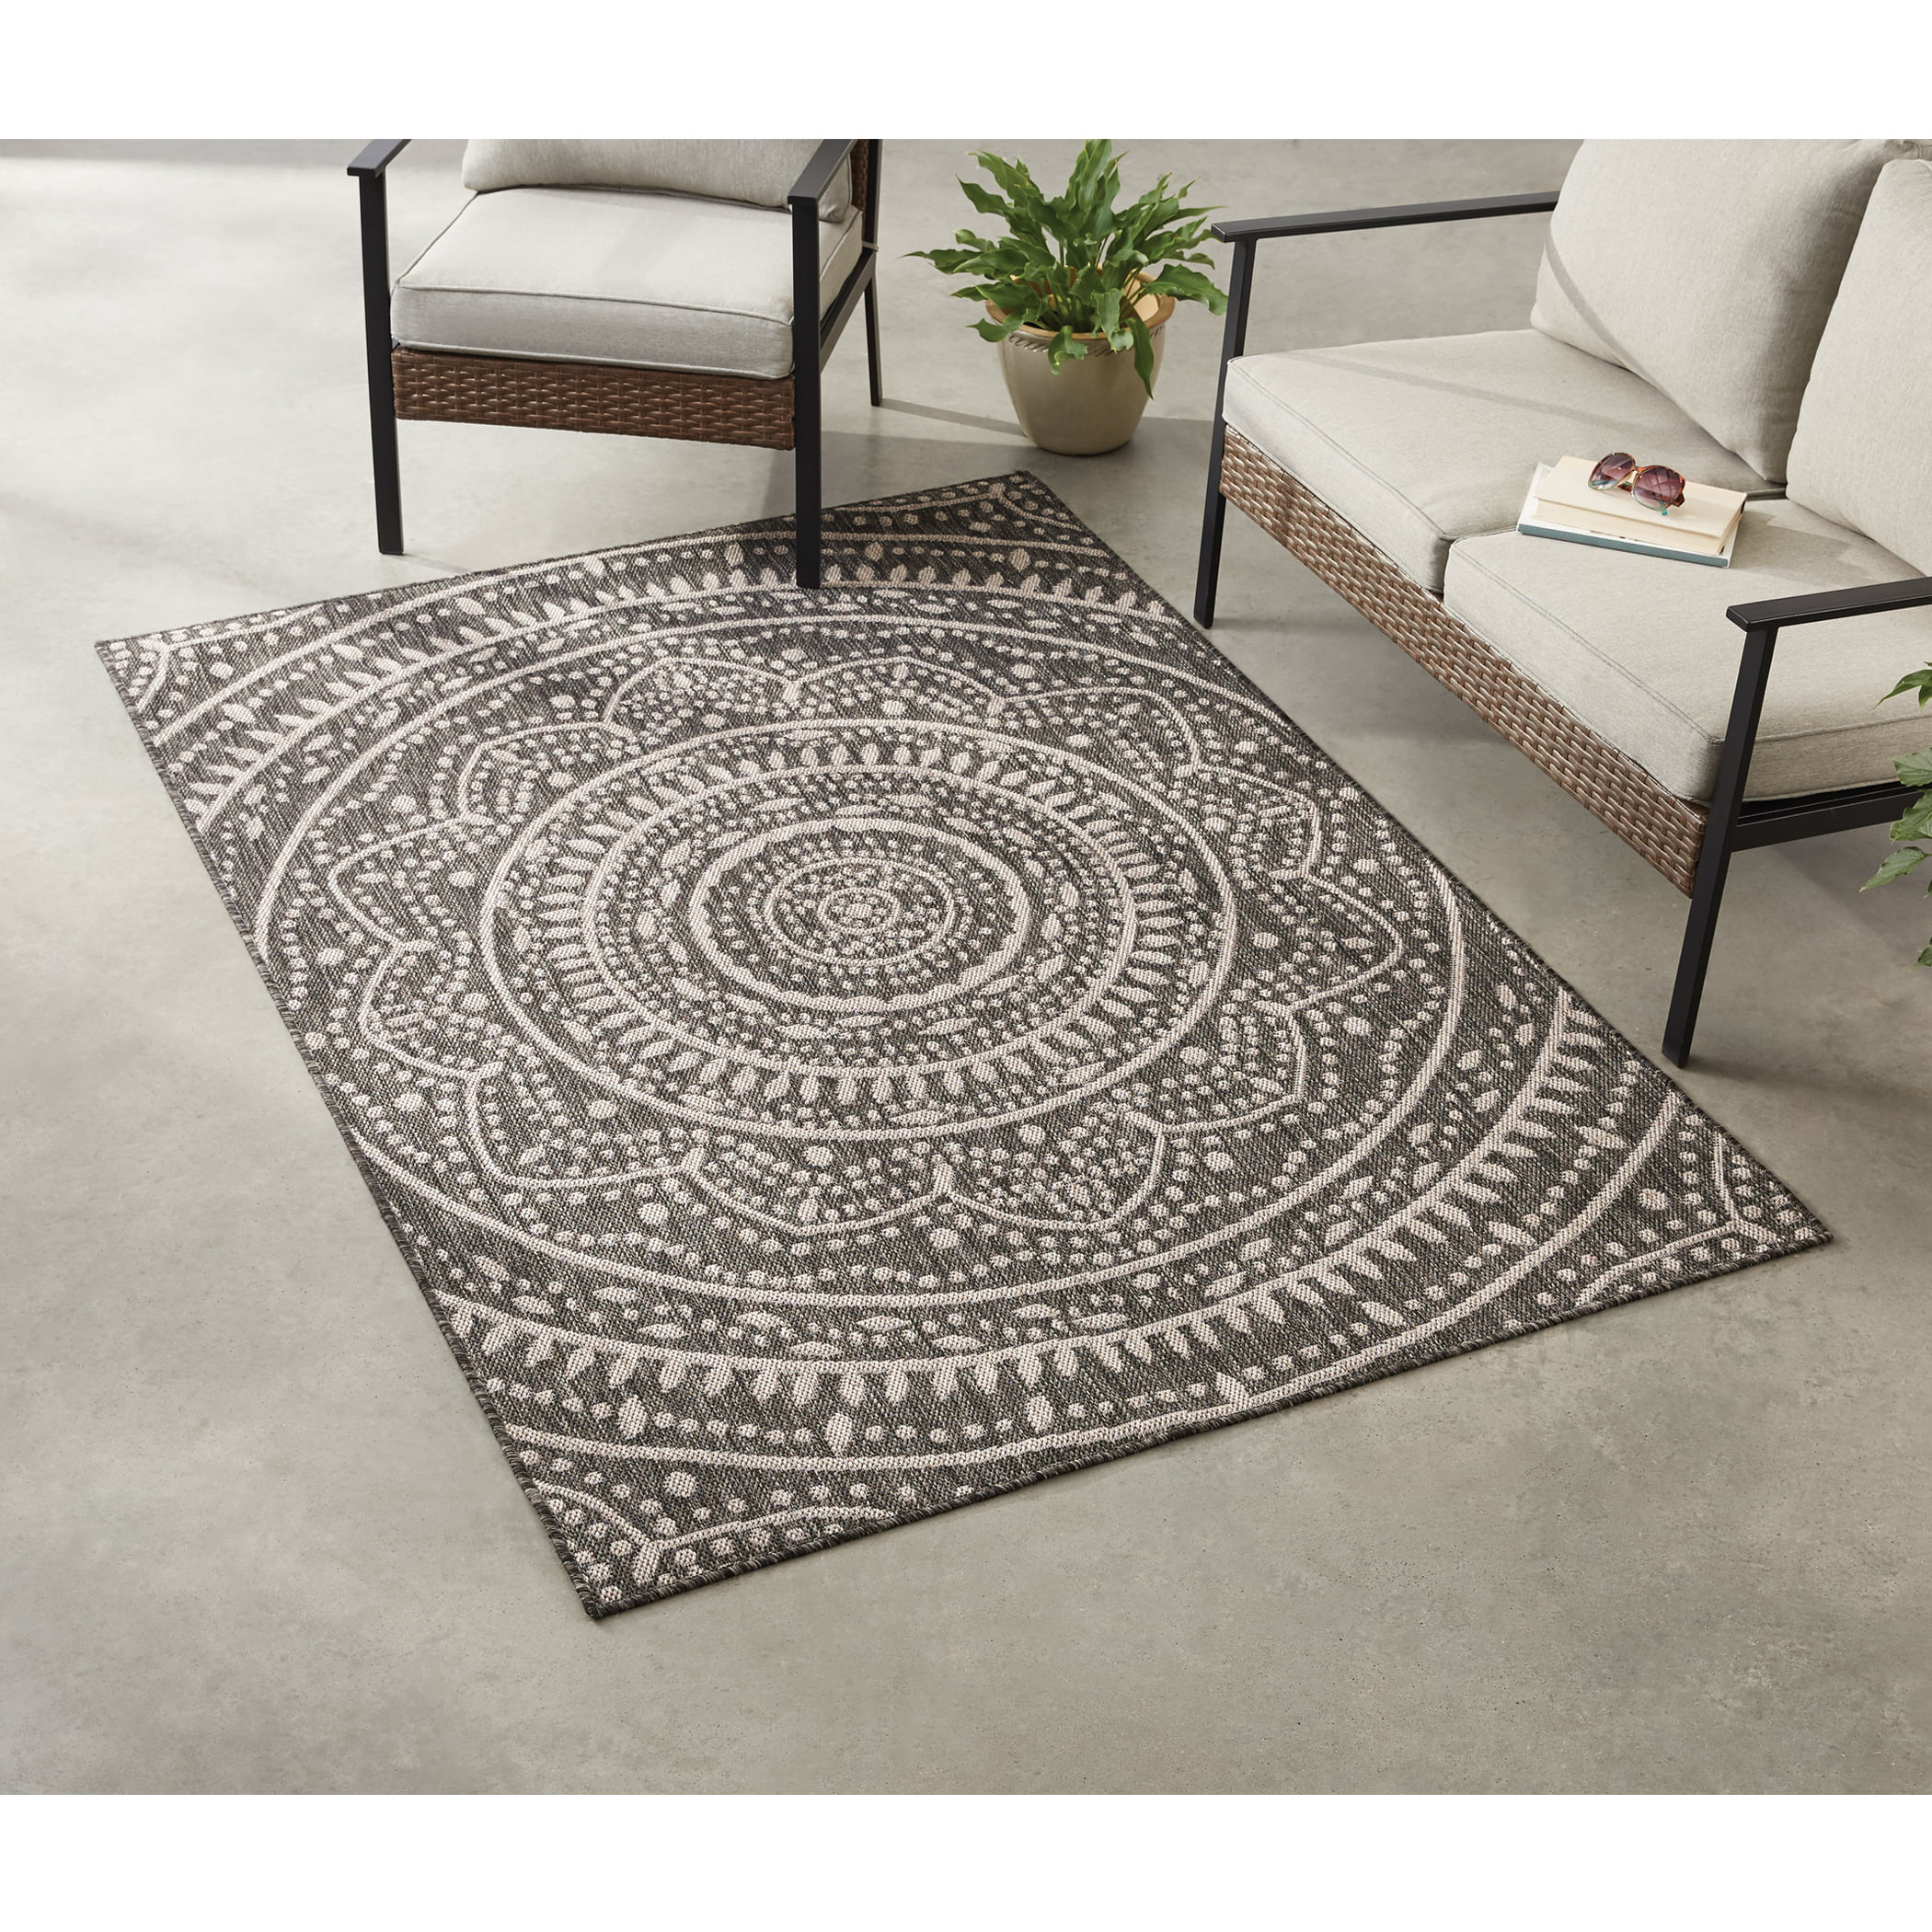 Leia Medallion Indoor Outdoor Area Rug 6 X 9 By